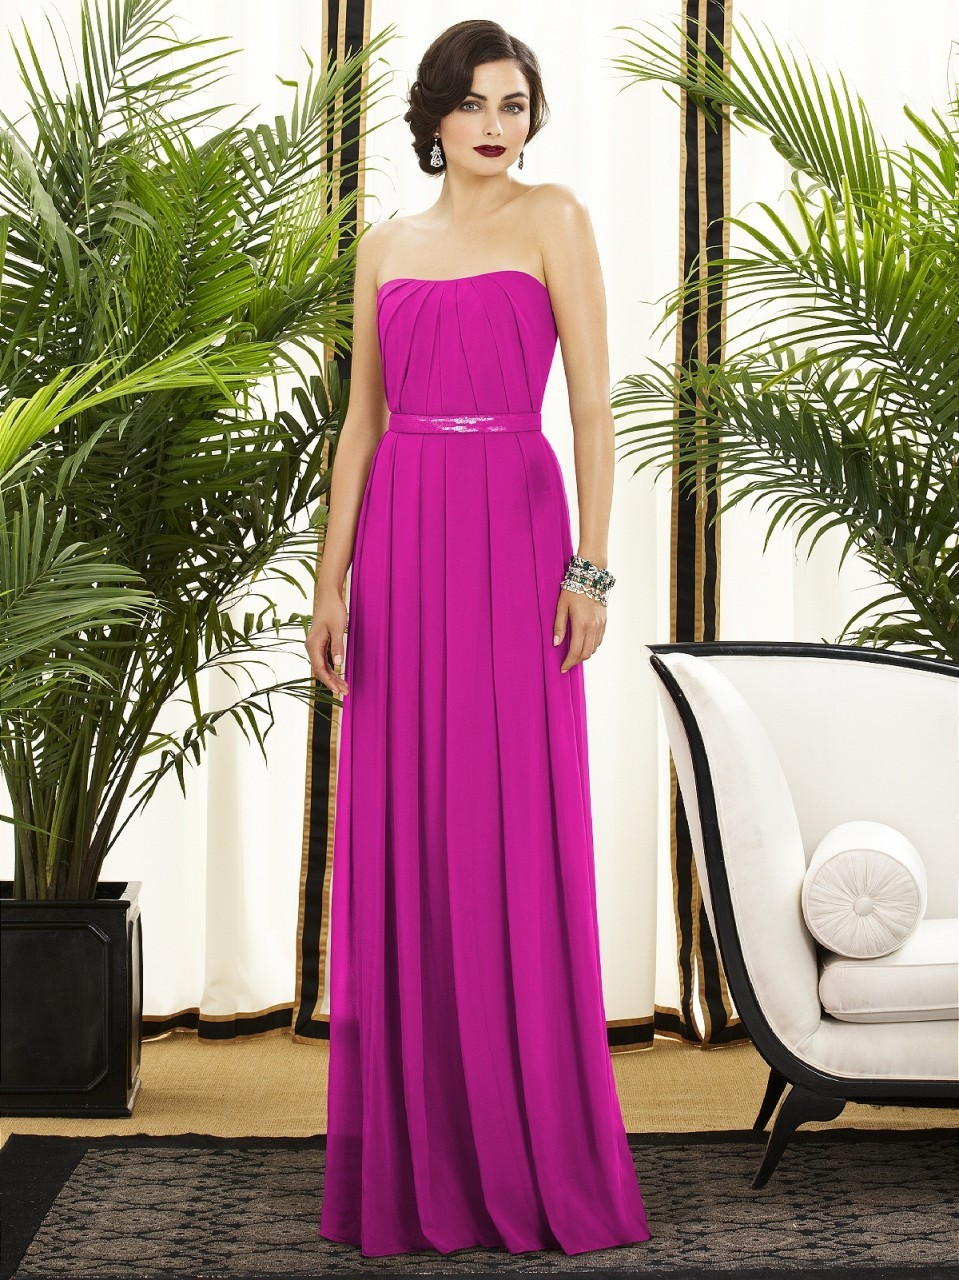 DESSY BRIDESMAID DRESSES|DESSY DRESSES 2886|D2886|THE DESSY GROUP ...